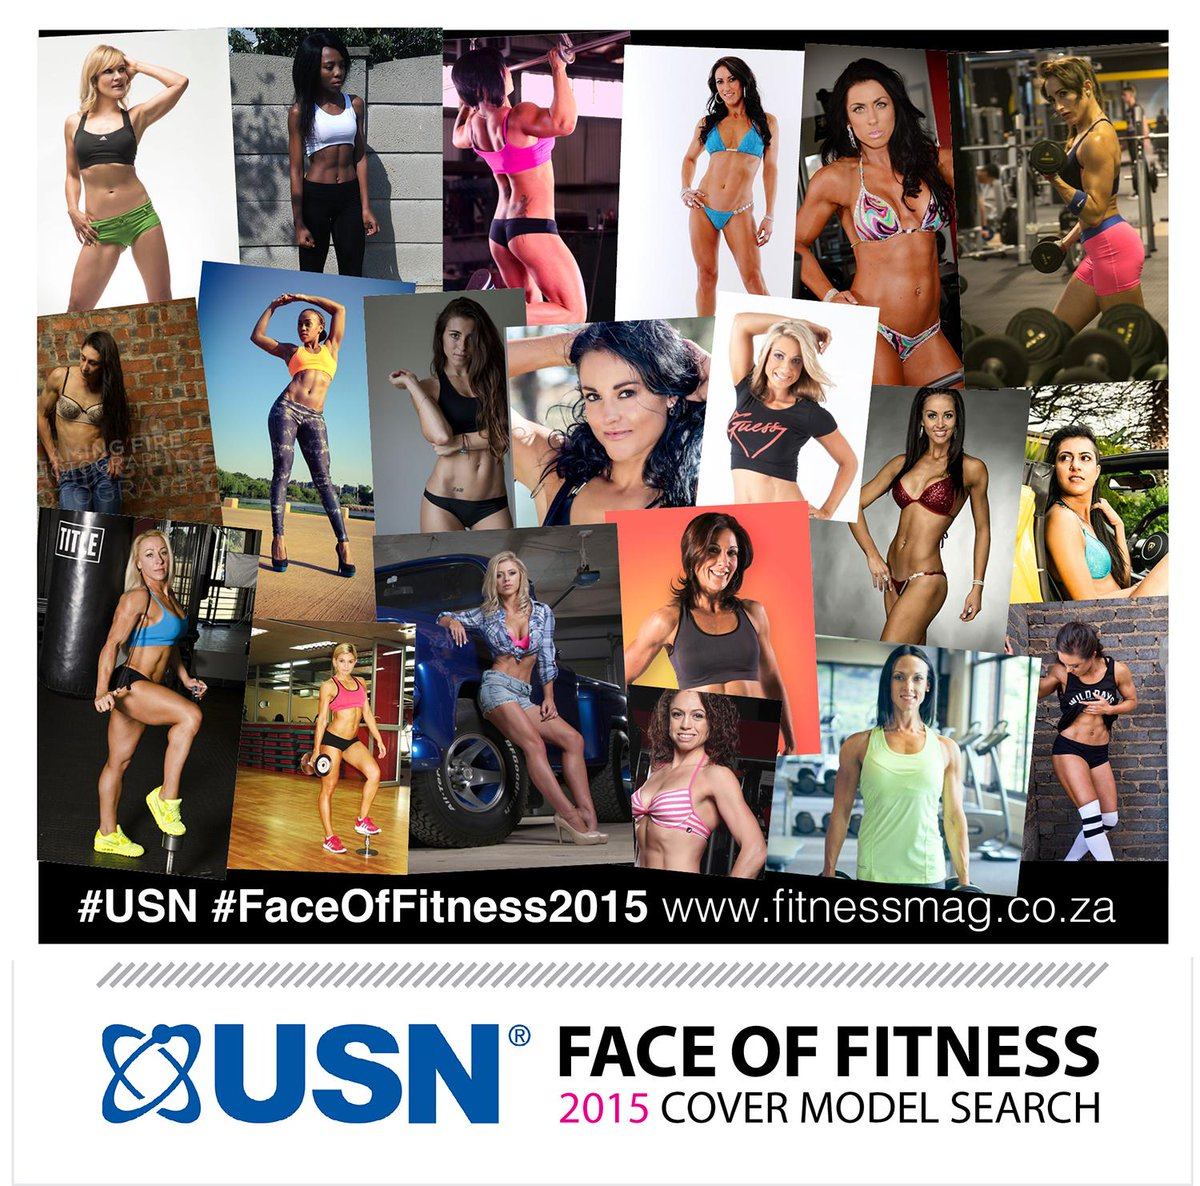 Wanting to see who has entered the #USN #FaceOfFitness2015? Hit the link below and retweet!  http://t.co/GR3MNmmoDU http://t.co/K92NfKSkLm